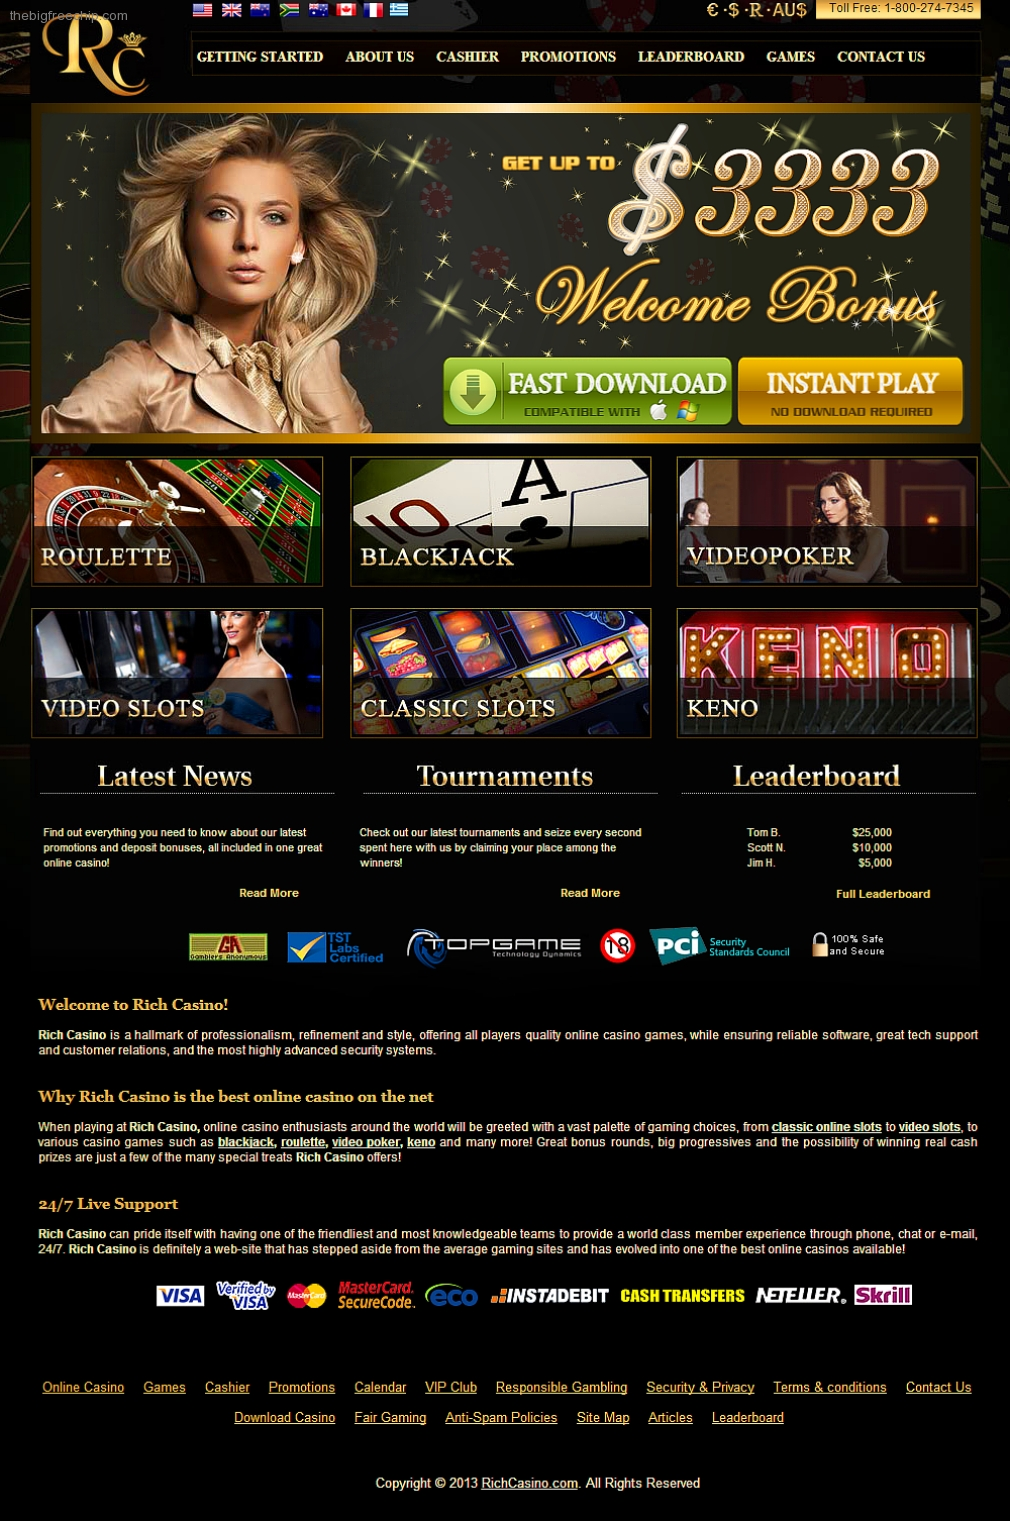 Free bonuses at online casinos illegal gambling websites